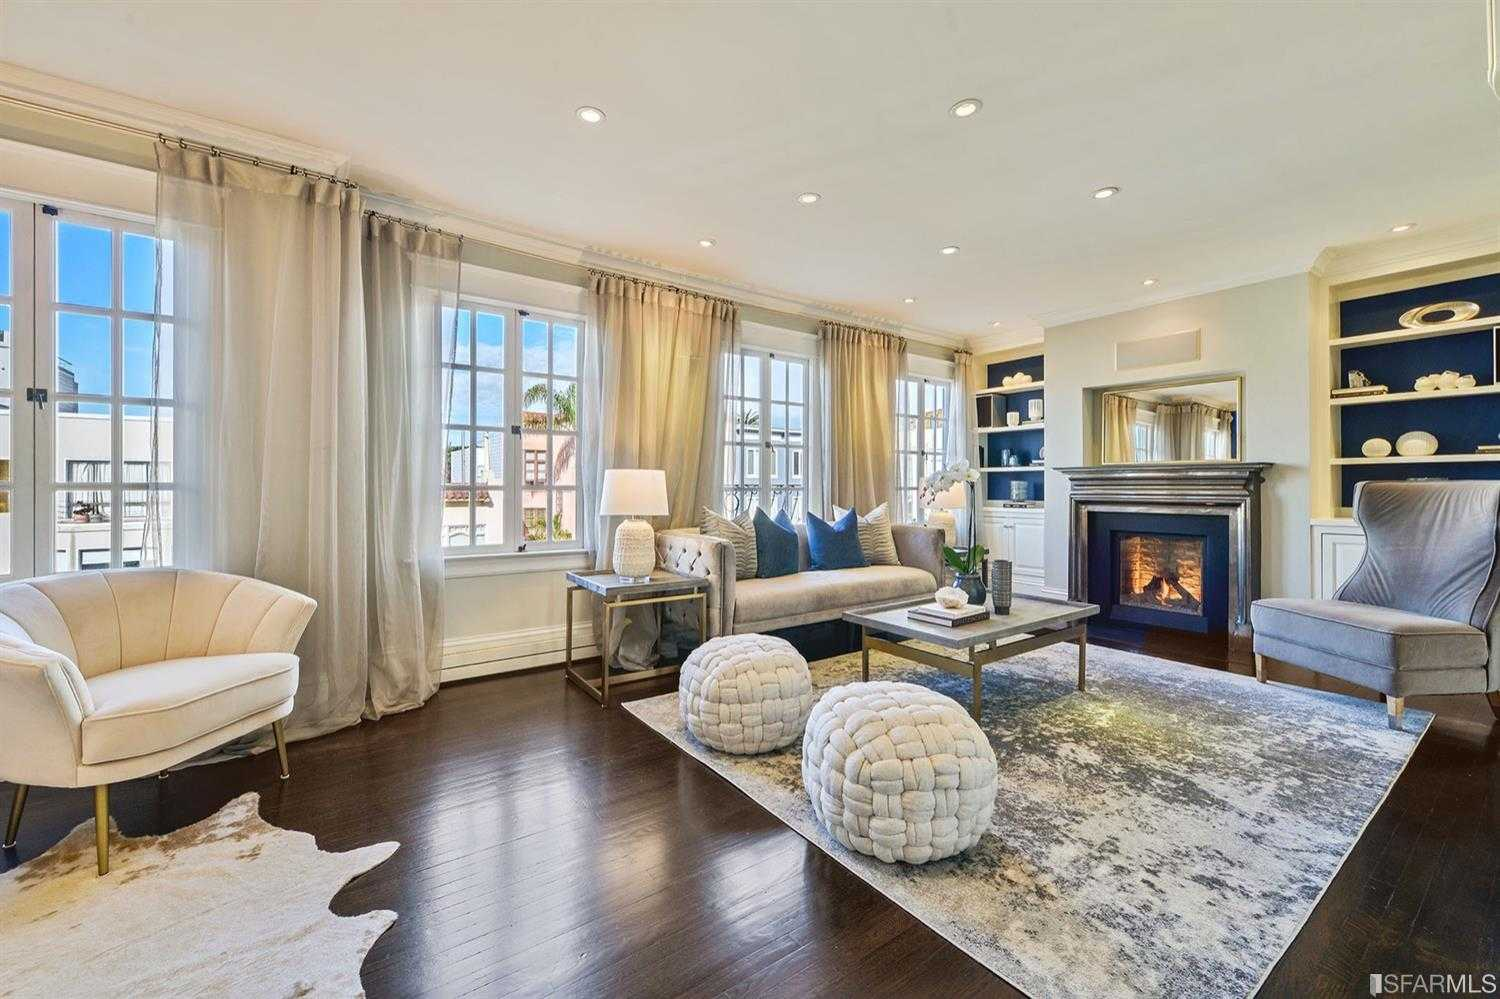 $1,750,000 - 2Br/2Ba -  for Sale in San Francisco